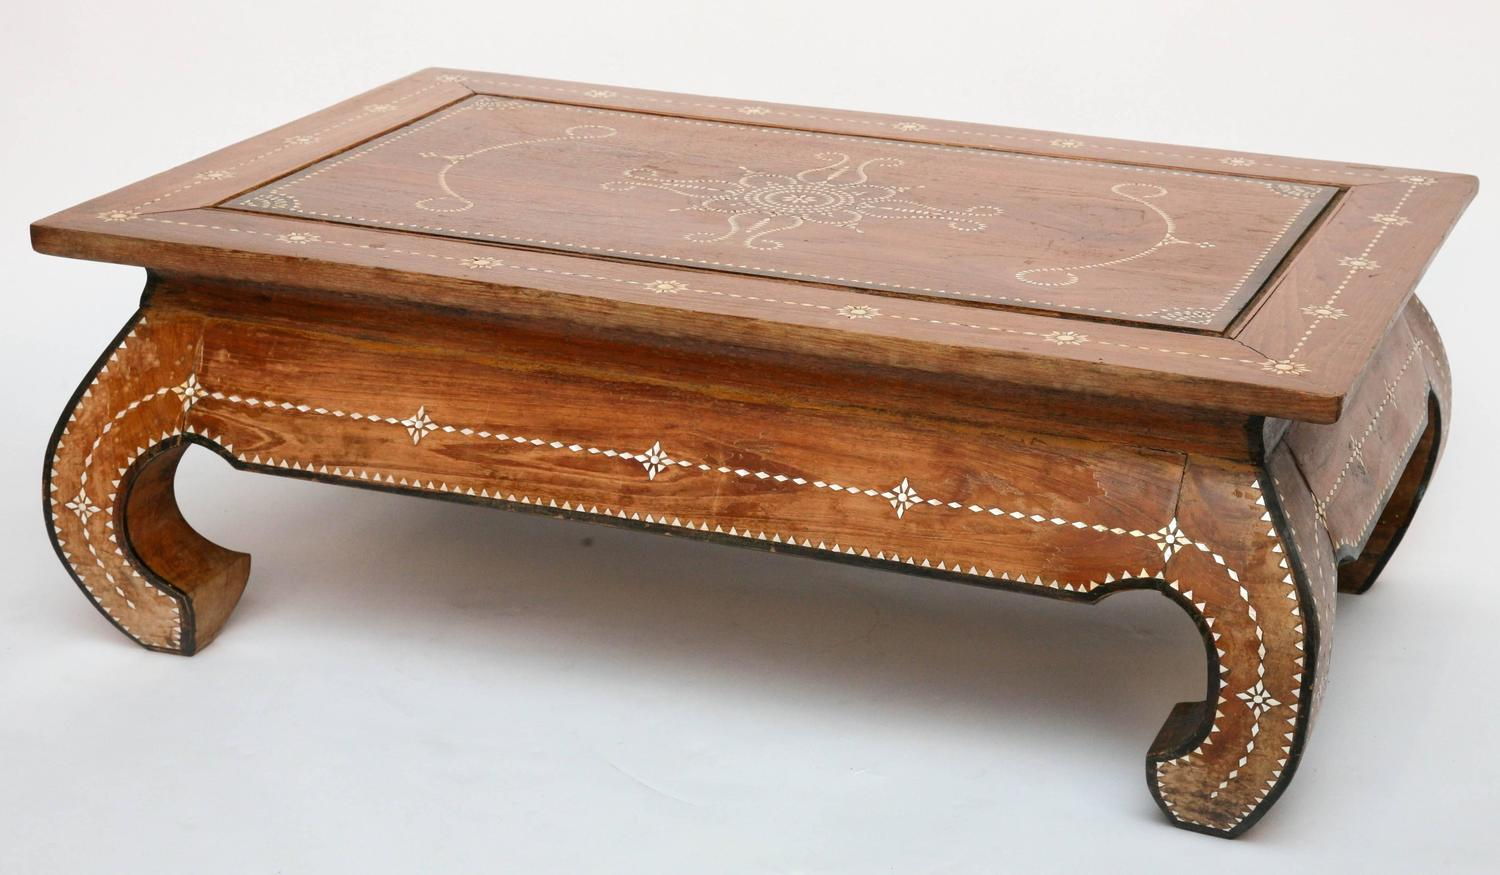 Superbly Inlaid Moroccan Coffee Table At 1stdibs